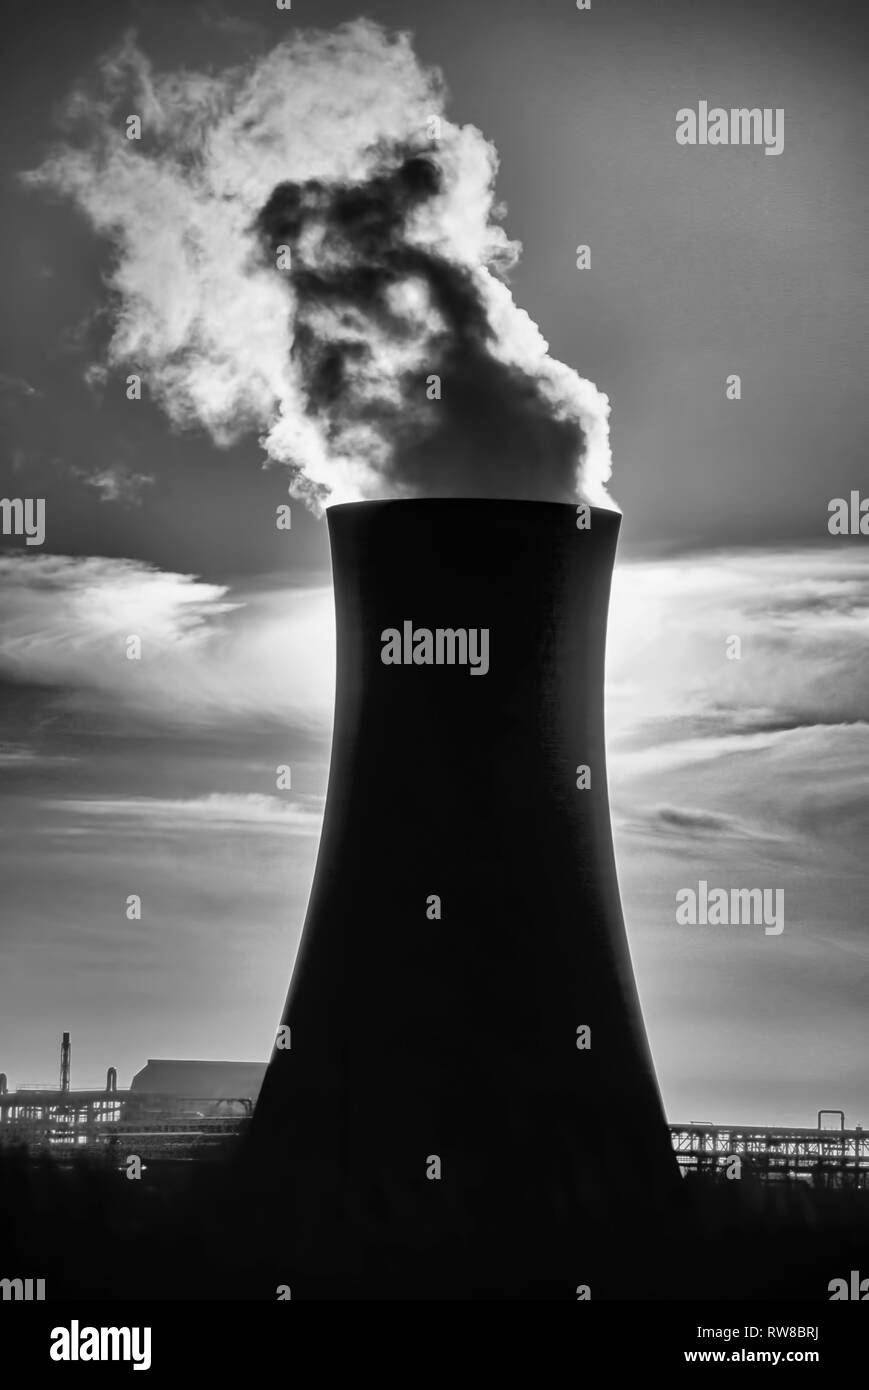 Industrial landscape and pollution, Teesside, UK - Stock Image